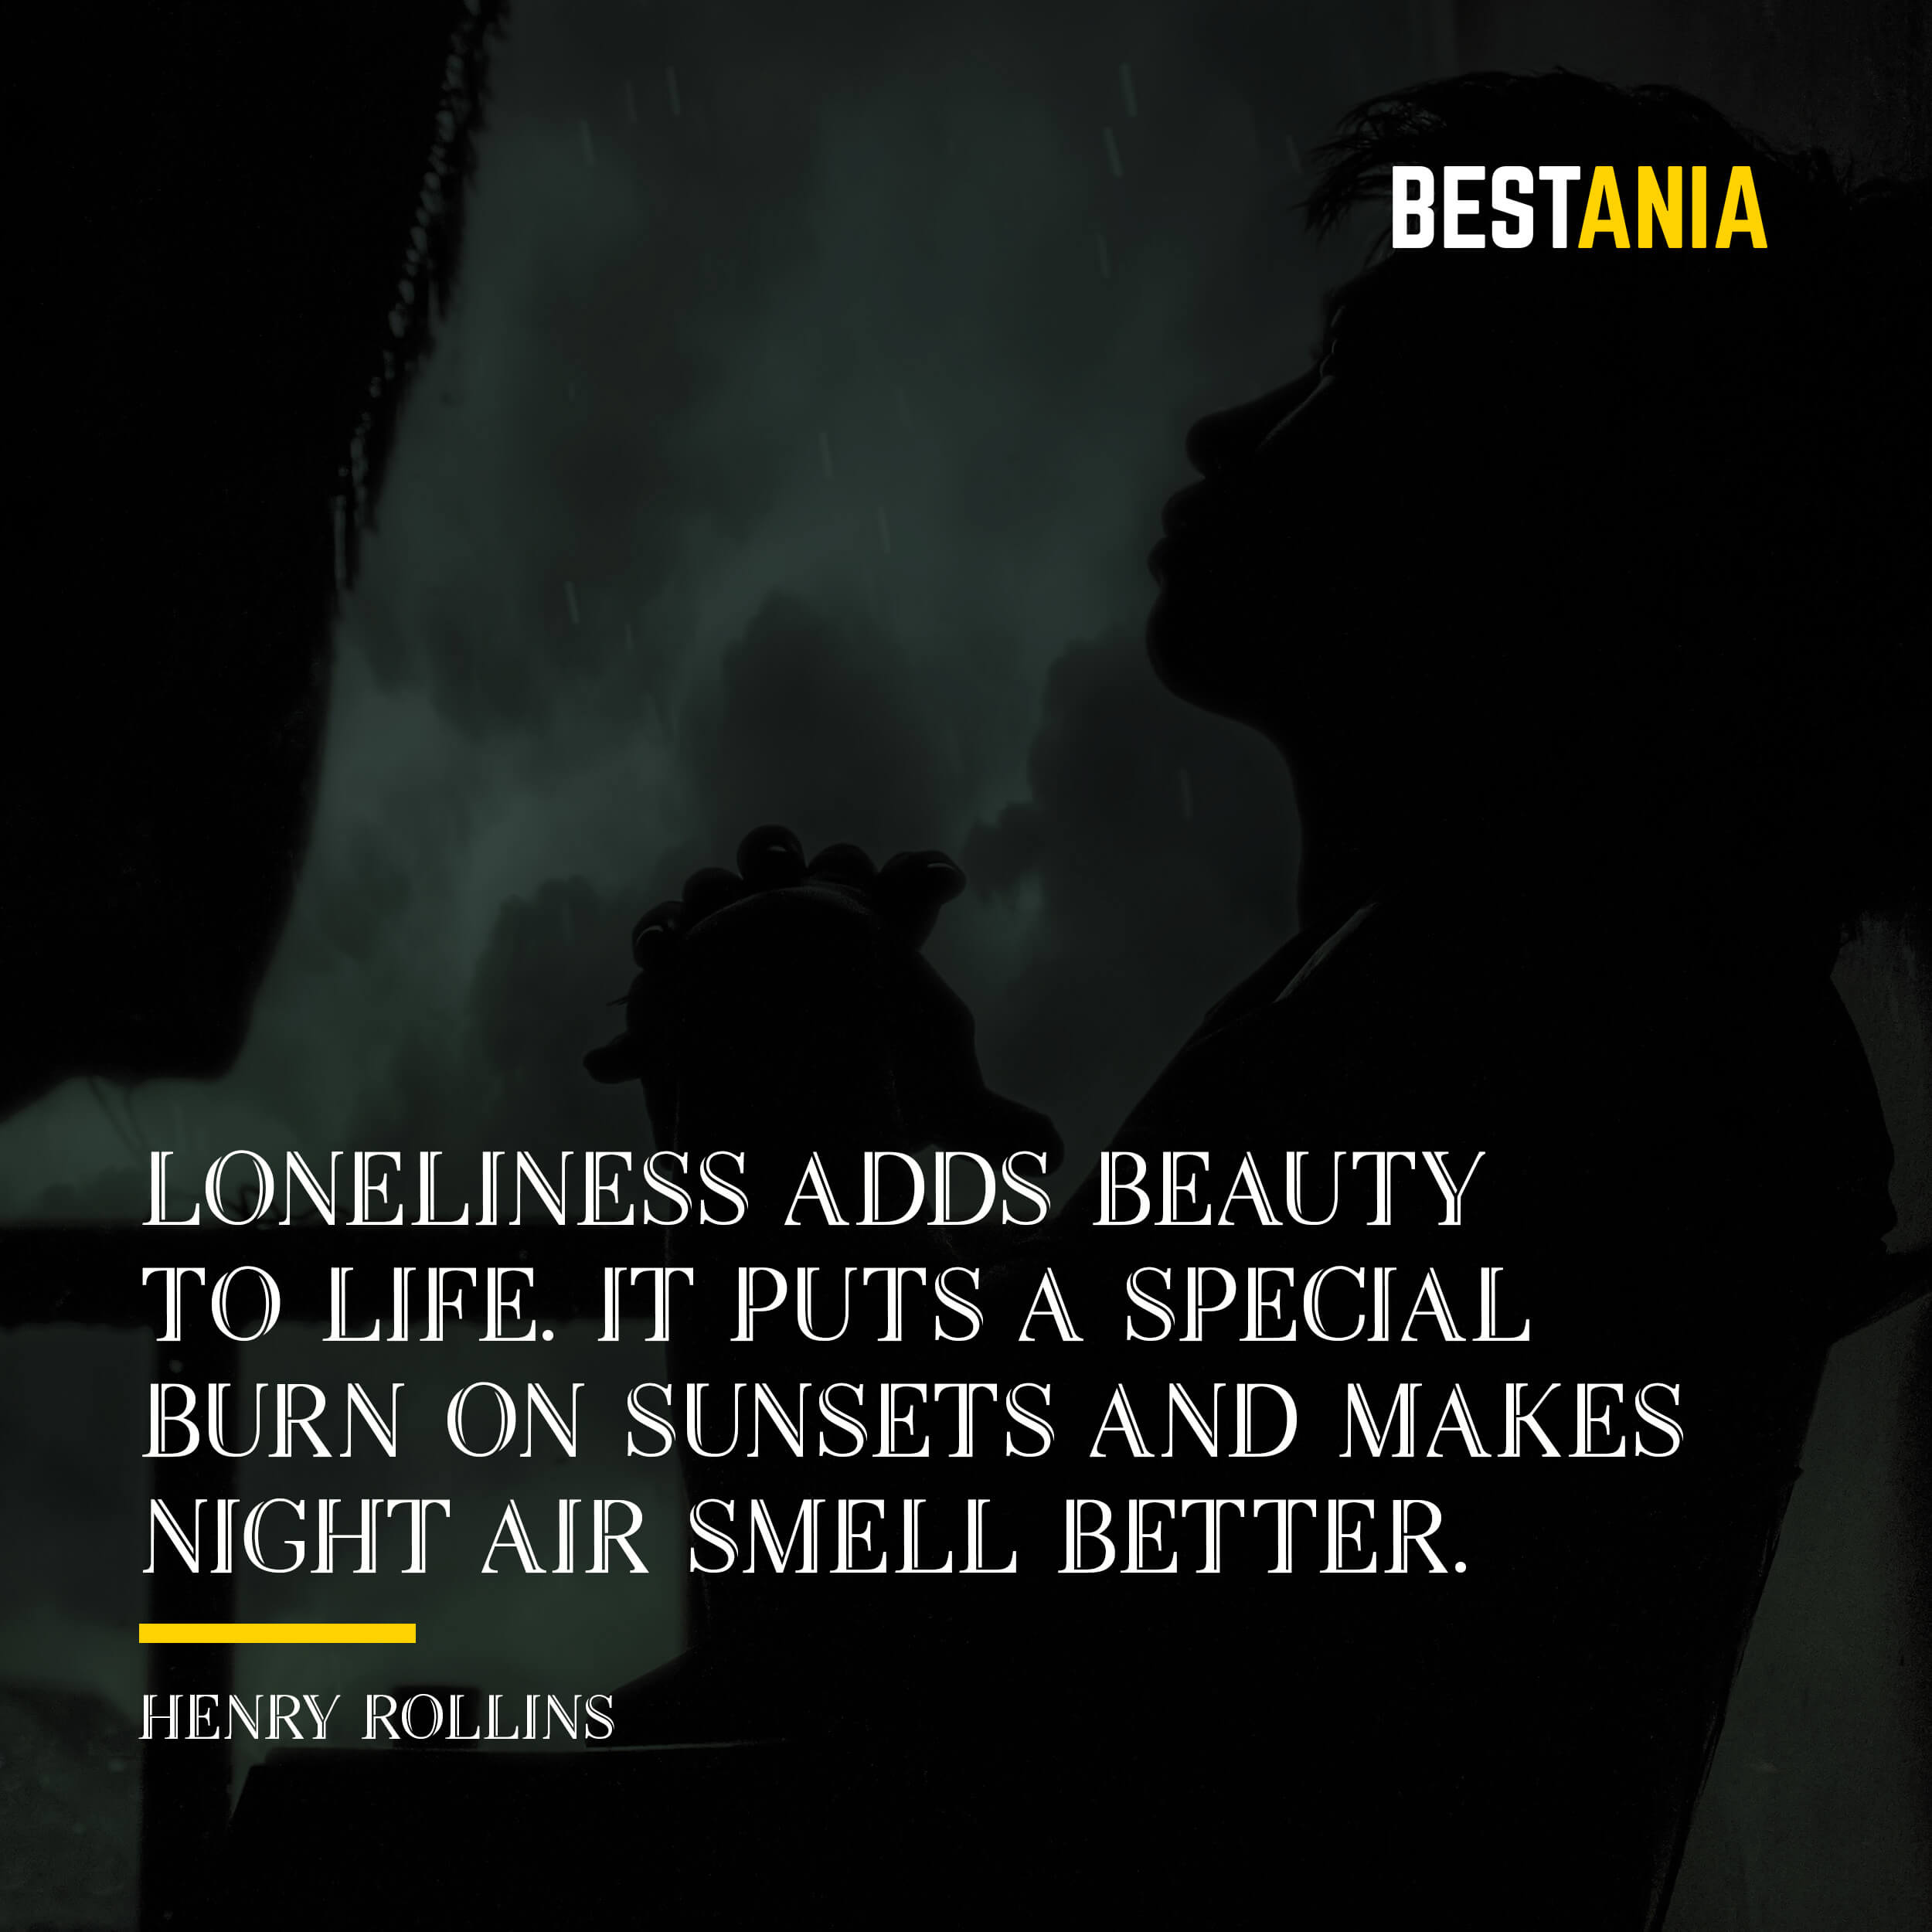 """""""LONELINESS ADDS BEAUTY TO LIFE. IT PUTS A SPECIAL BURN ON SUNSETS AND MAKES NIGHT AIR SMELL BETTER.""""  HENRY ROLLINS"""